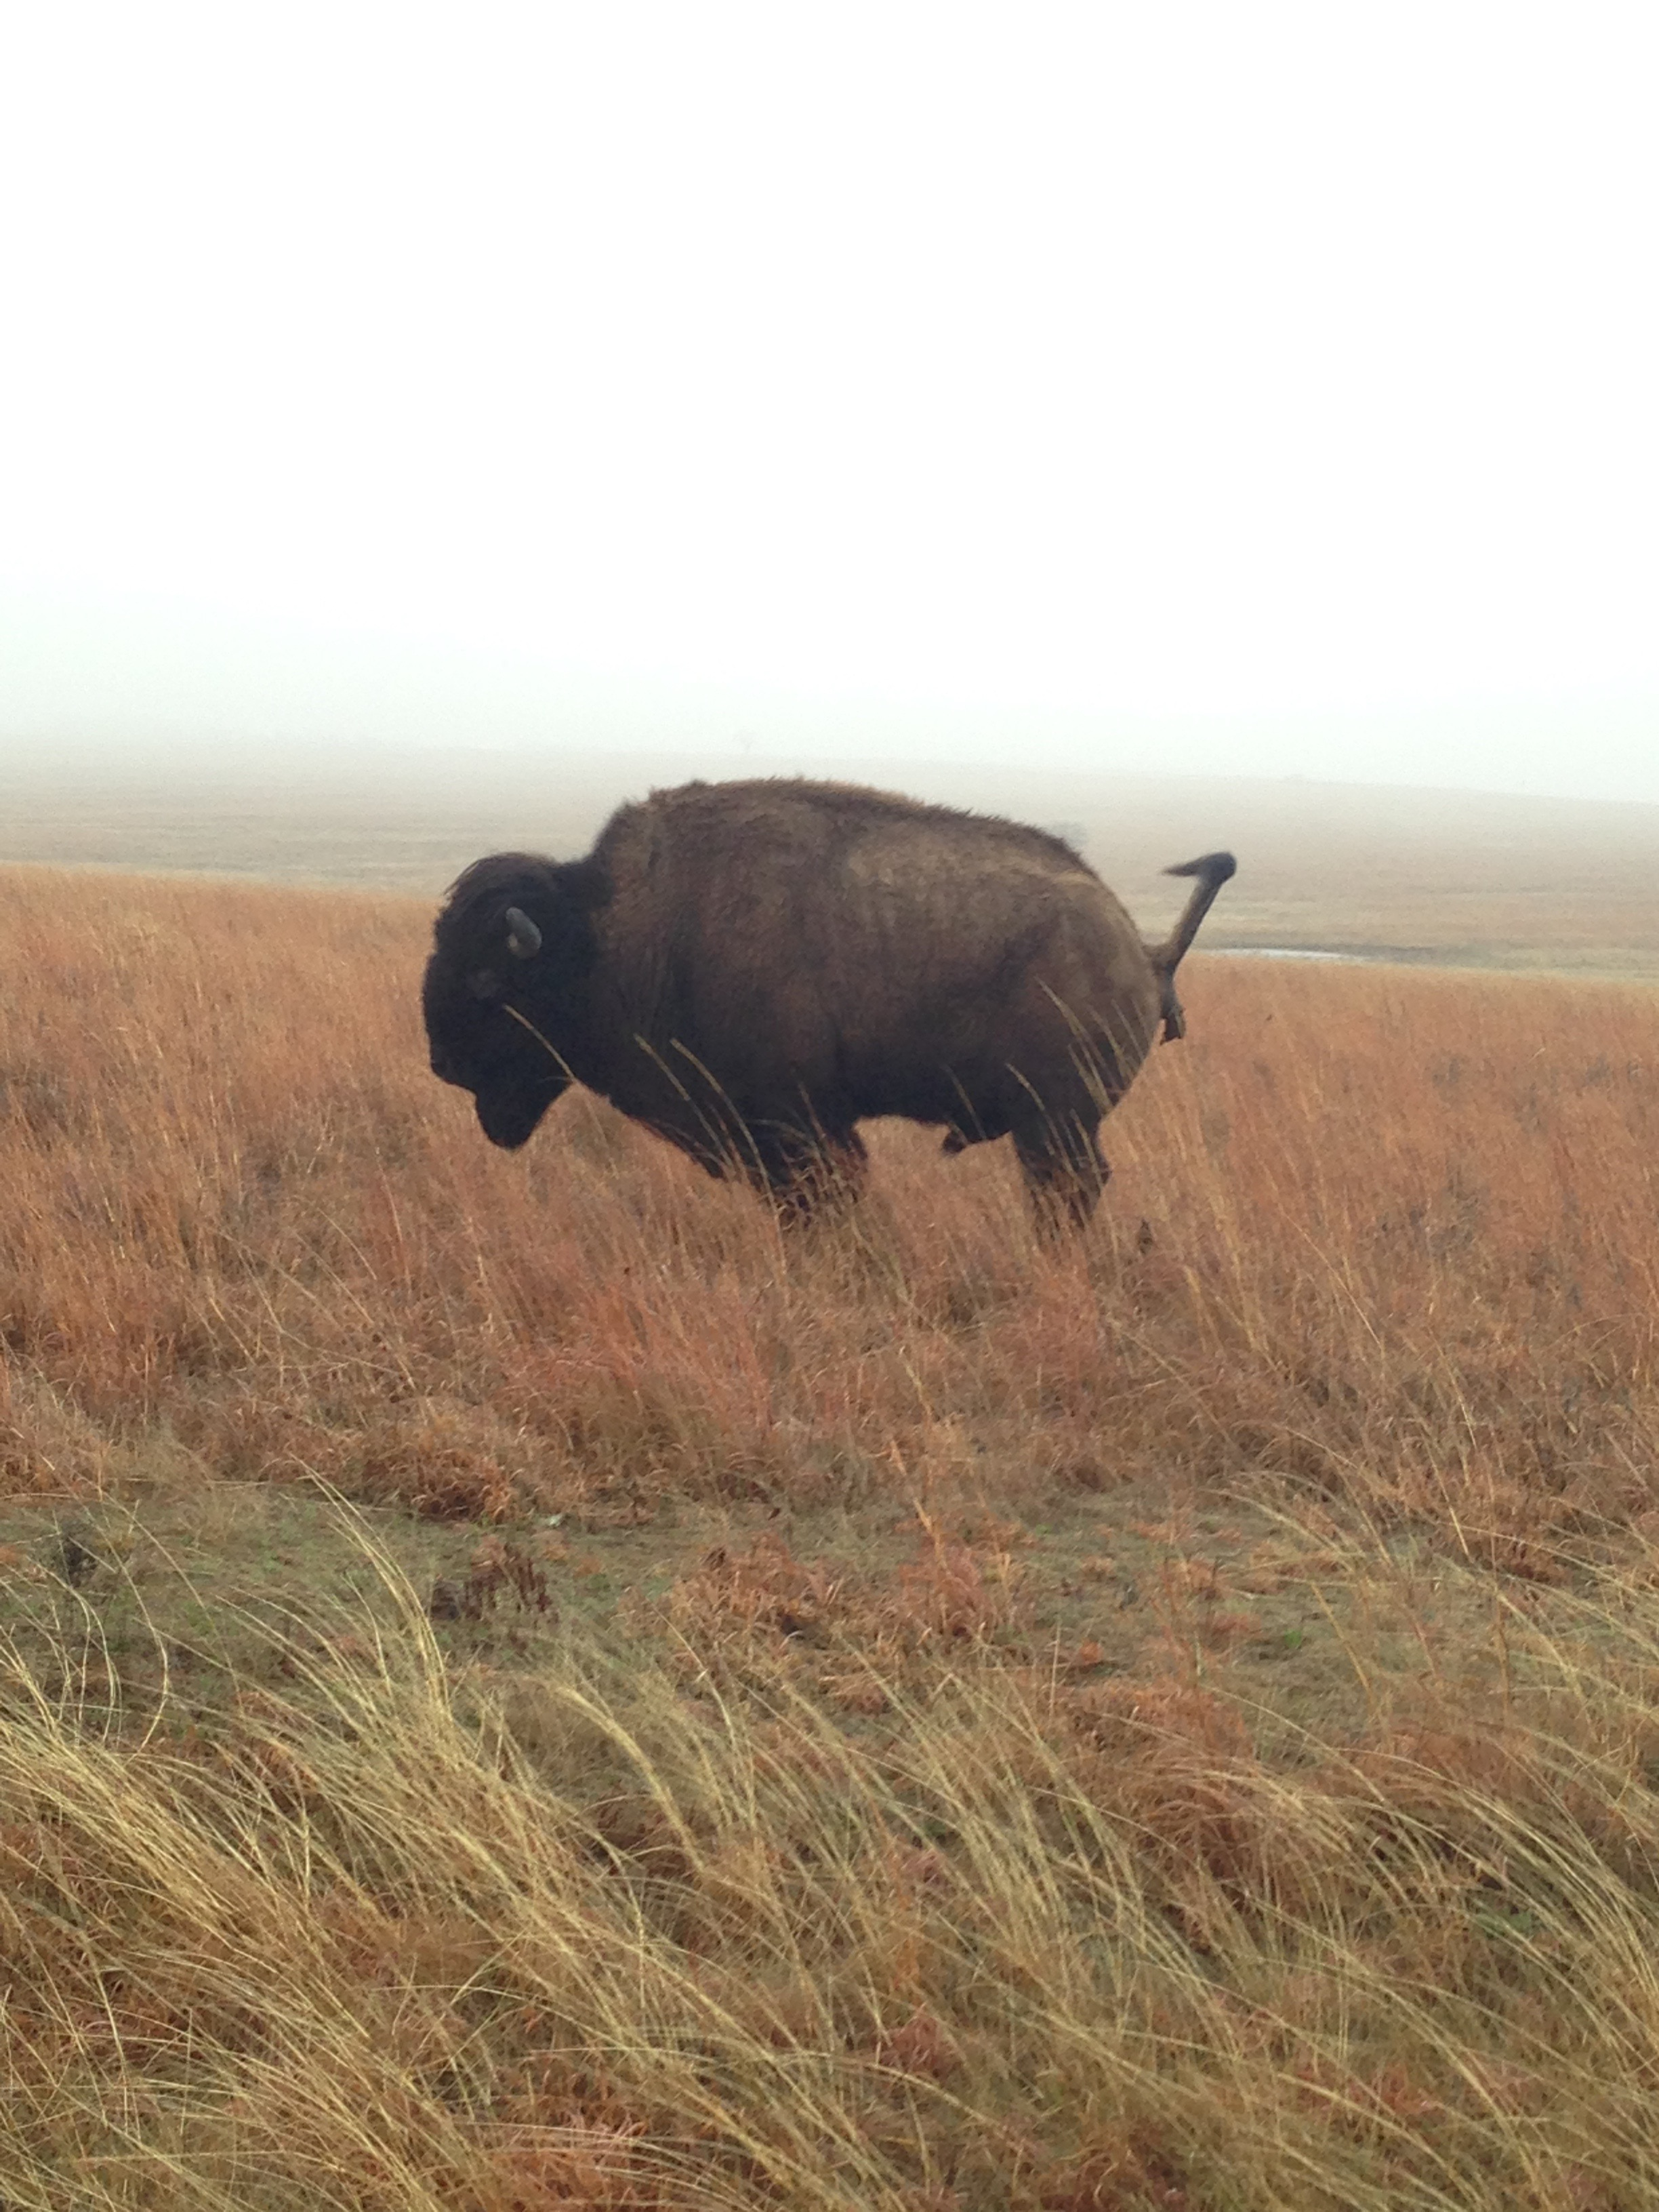 Oh yeah, we saw a pooping bison. Highlight of the trip.